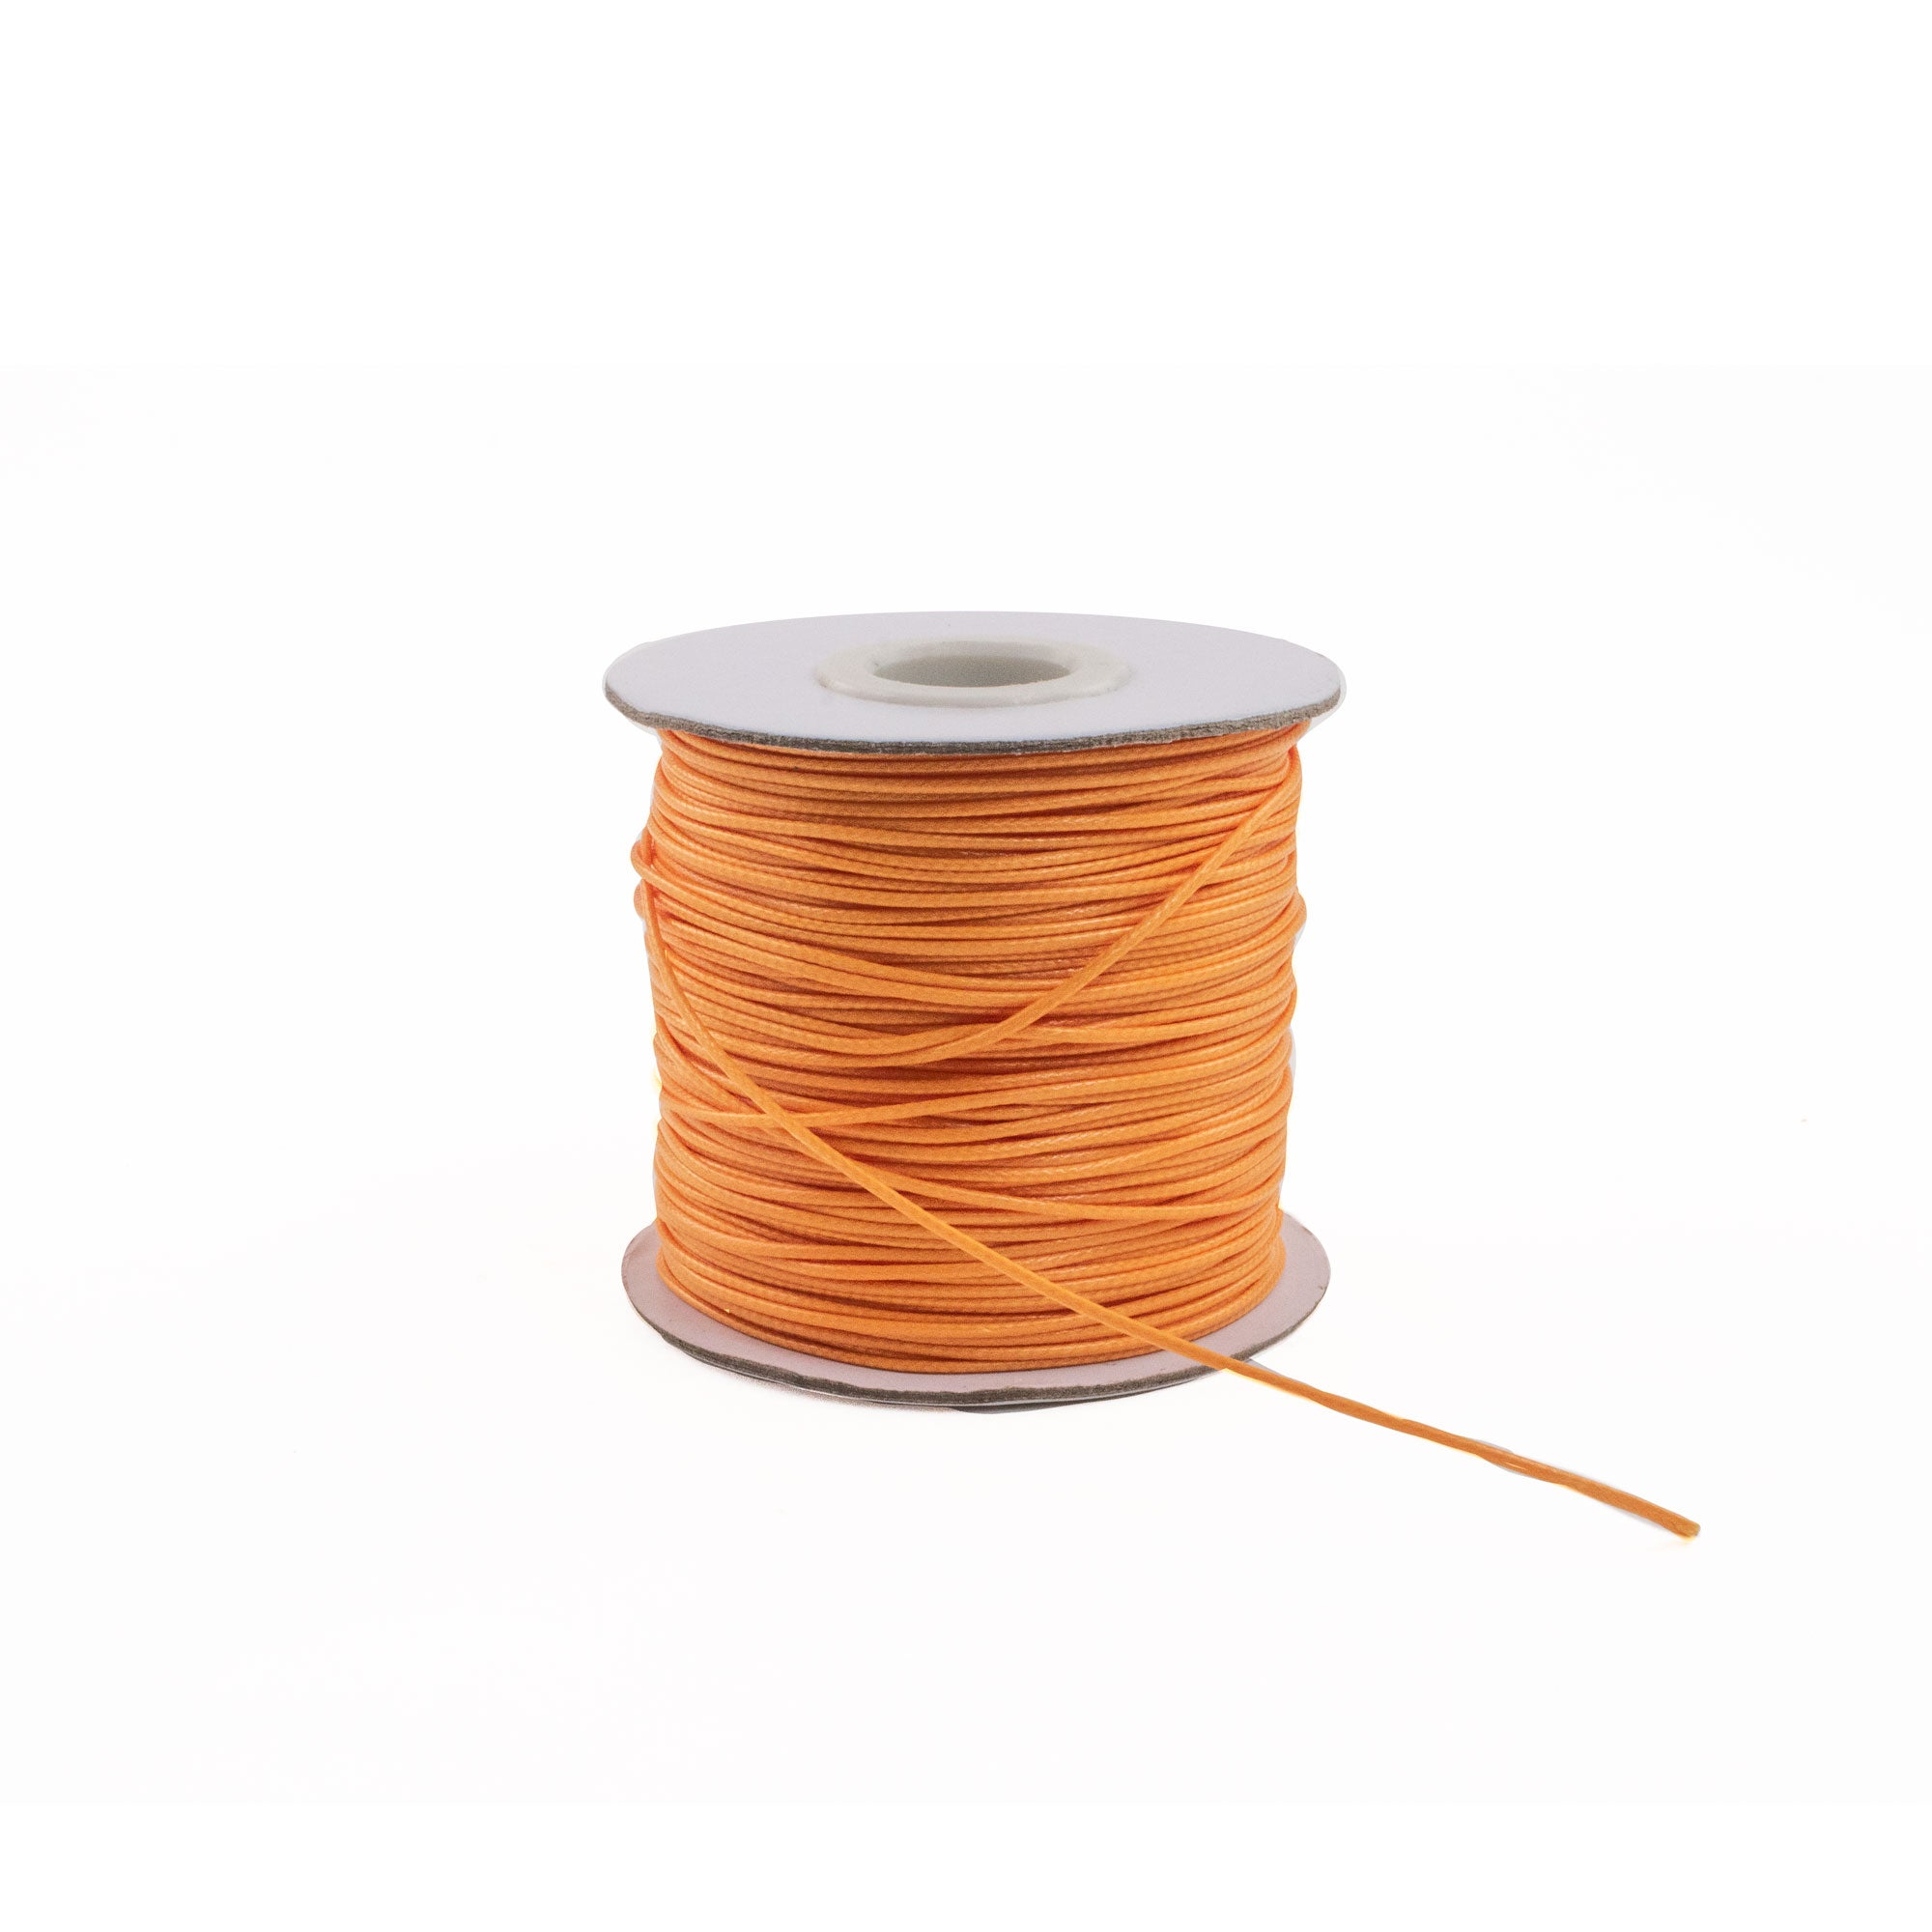 Refill - Spool of String